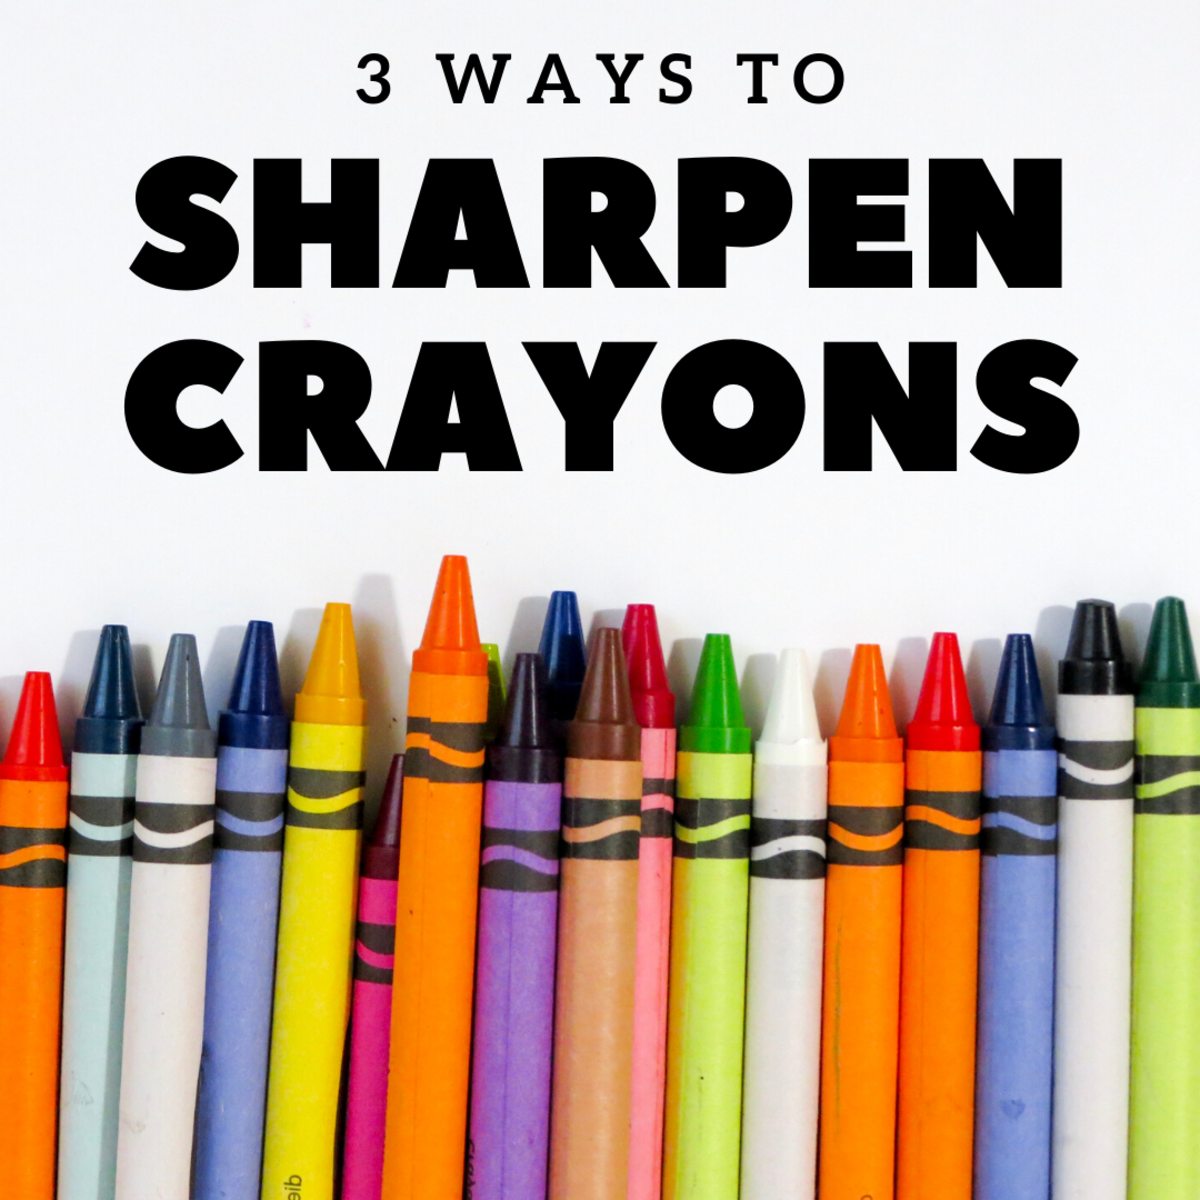 How to Sharpen Crayons